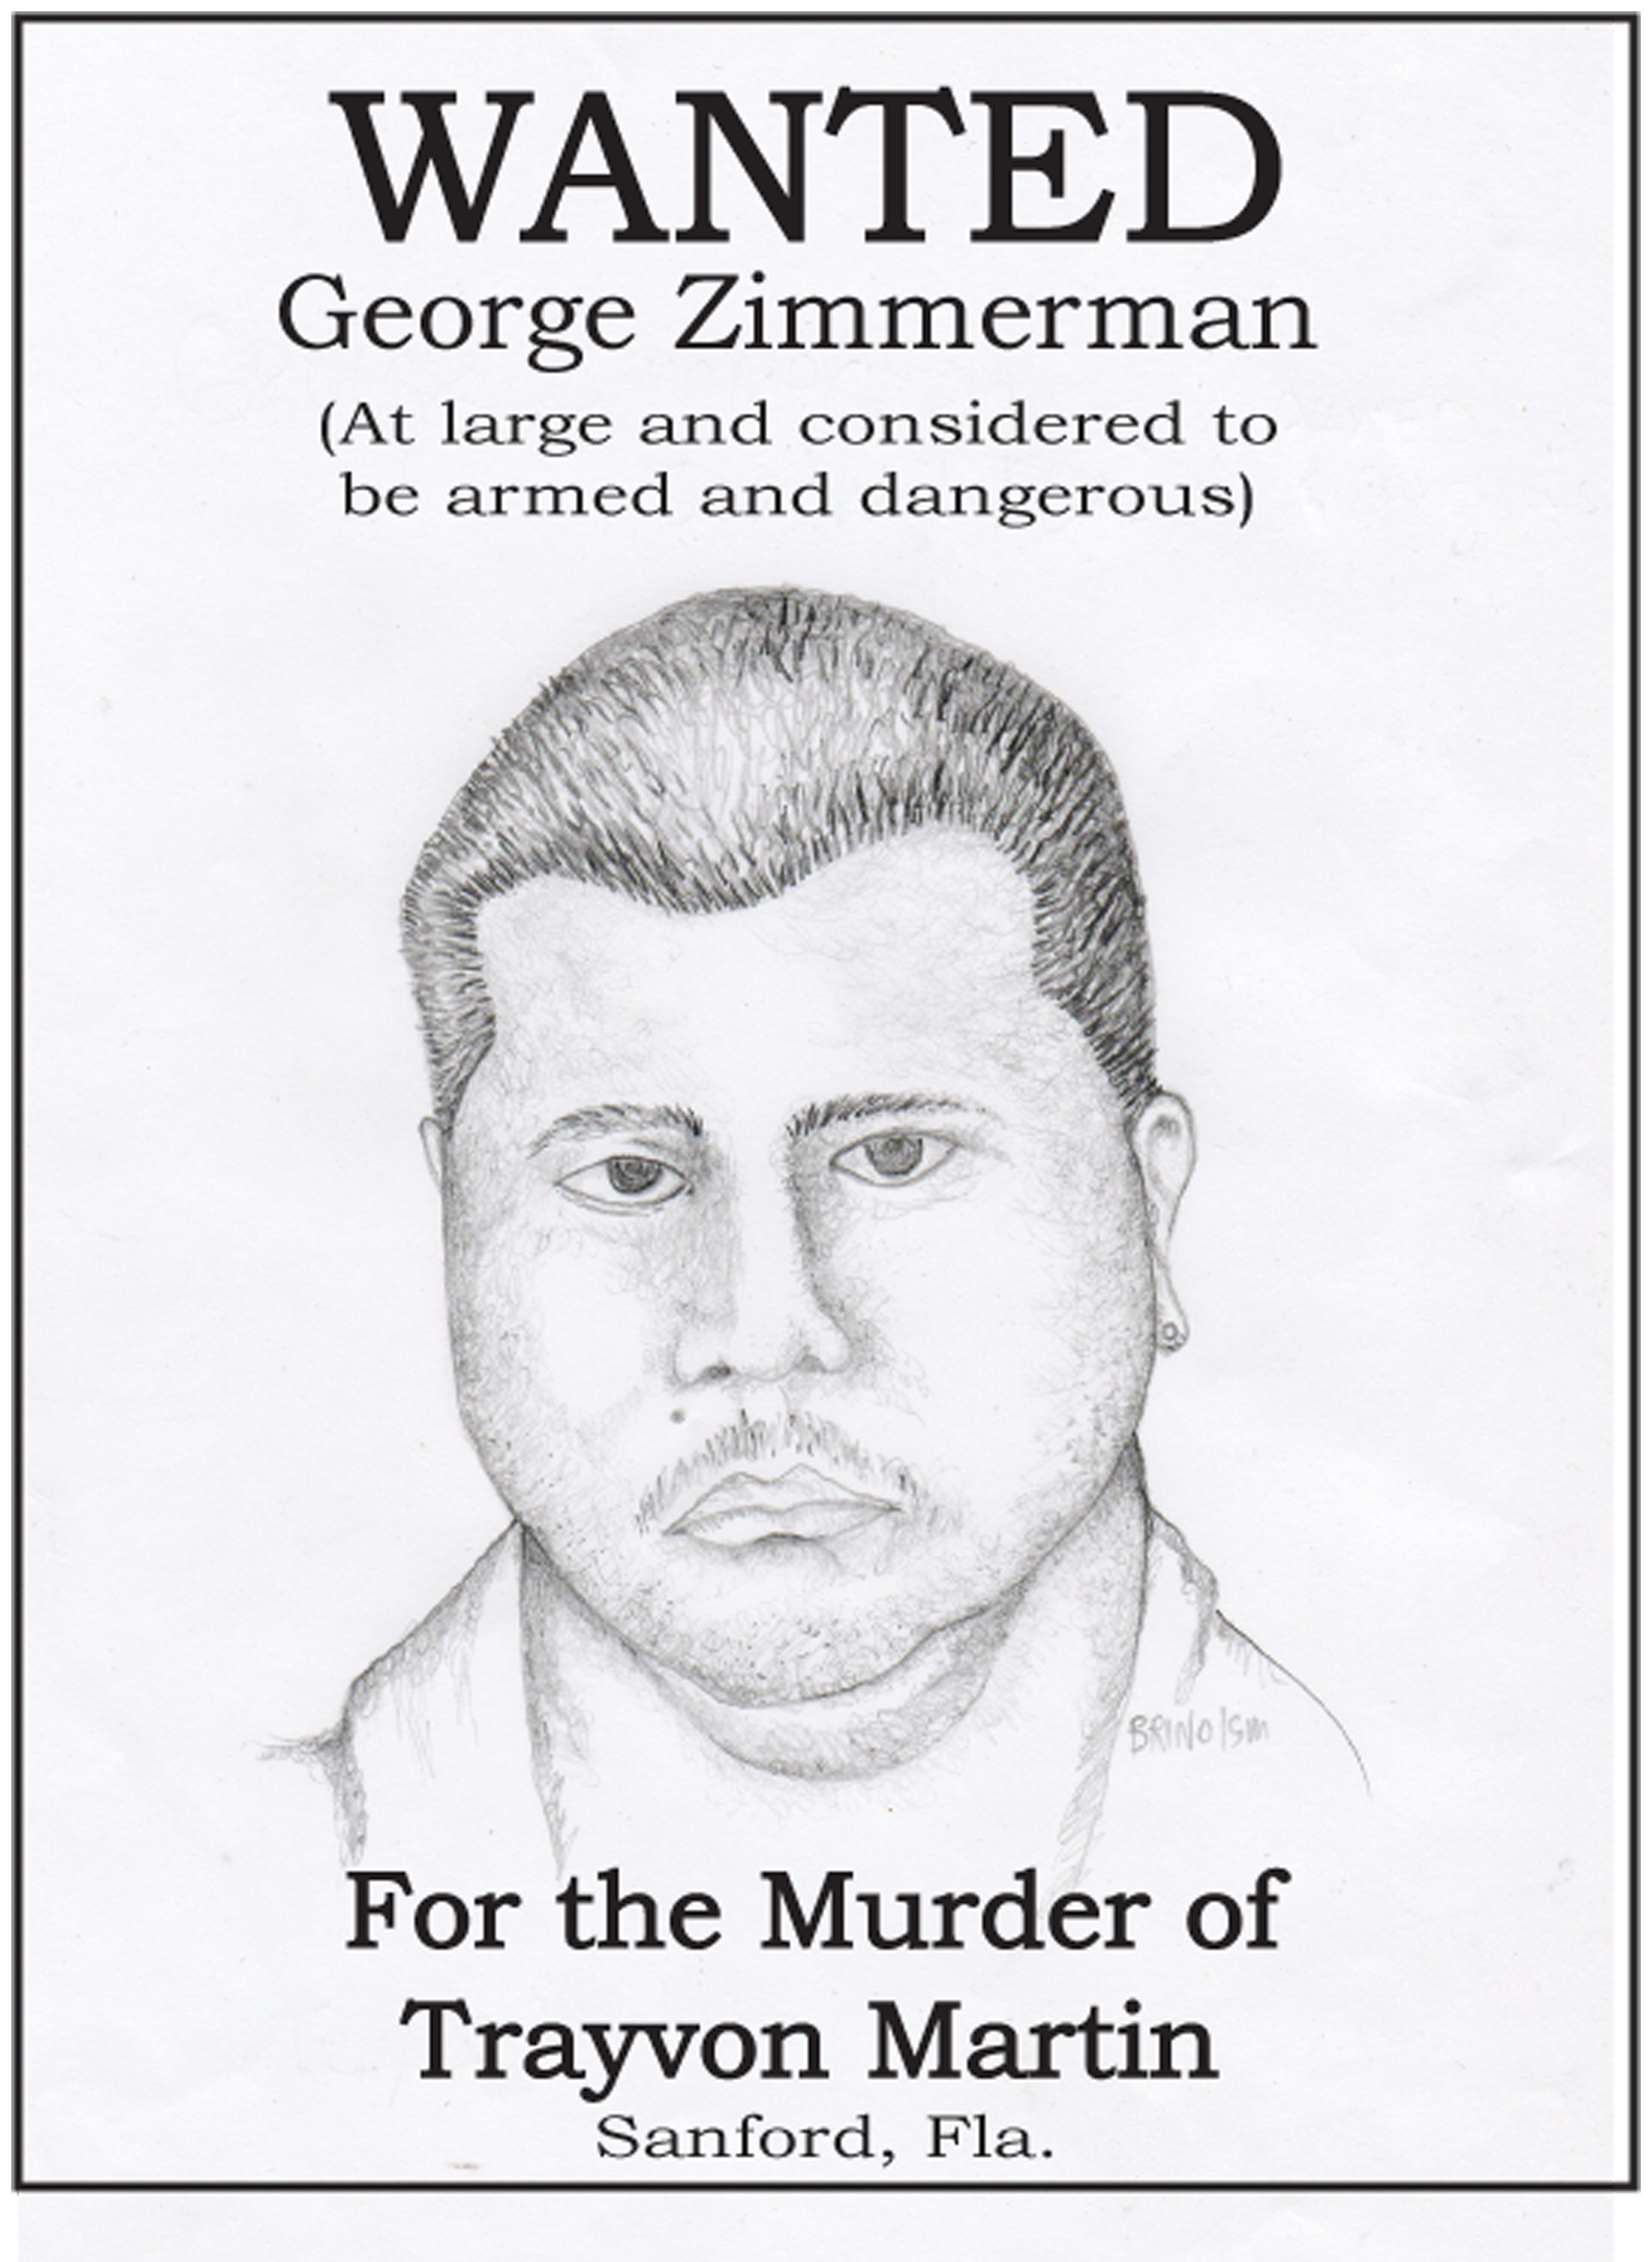 Wanted Poster for Killer of Trayvon Martin – Real Wanted Poster